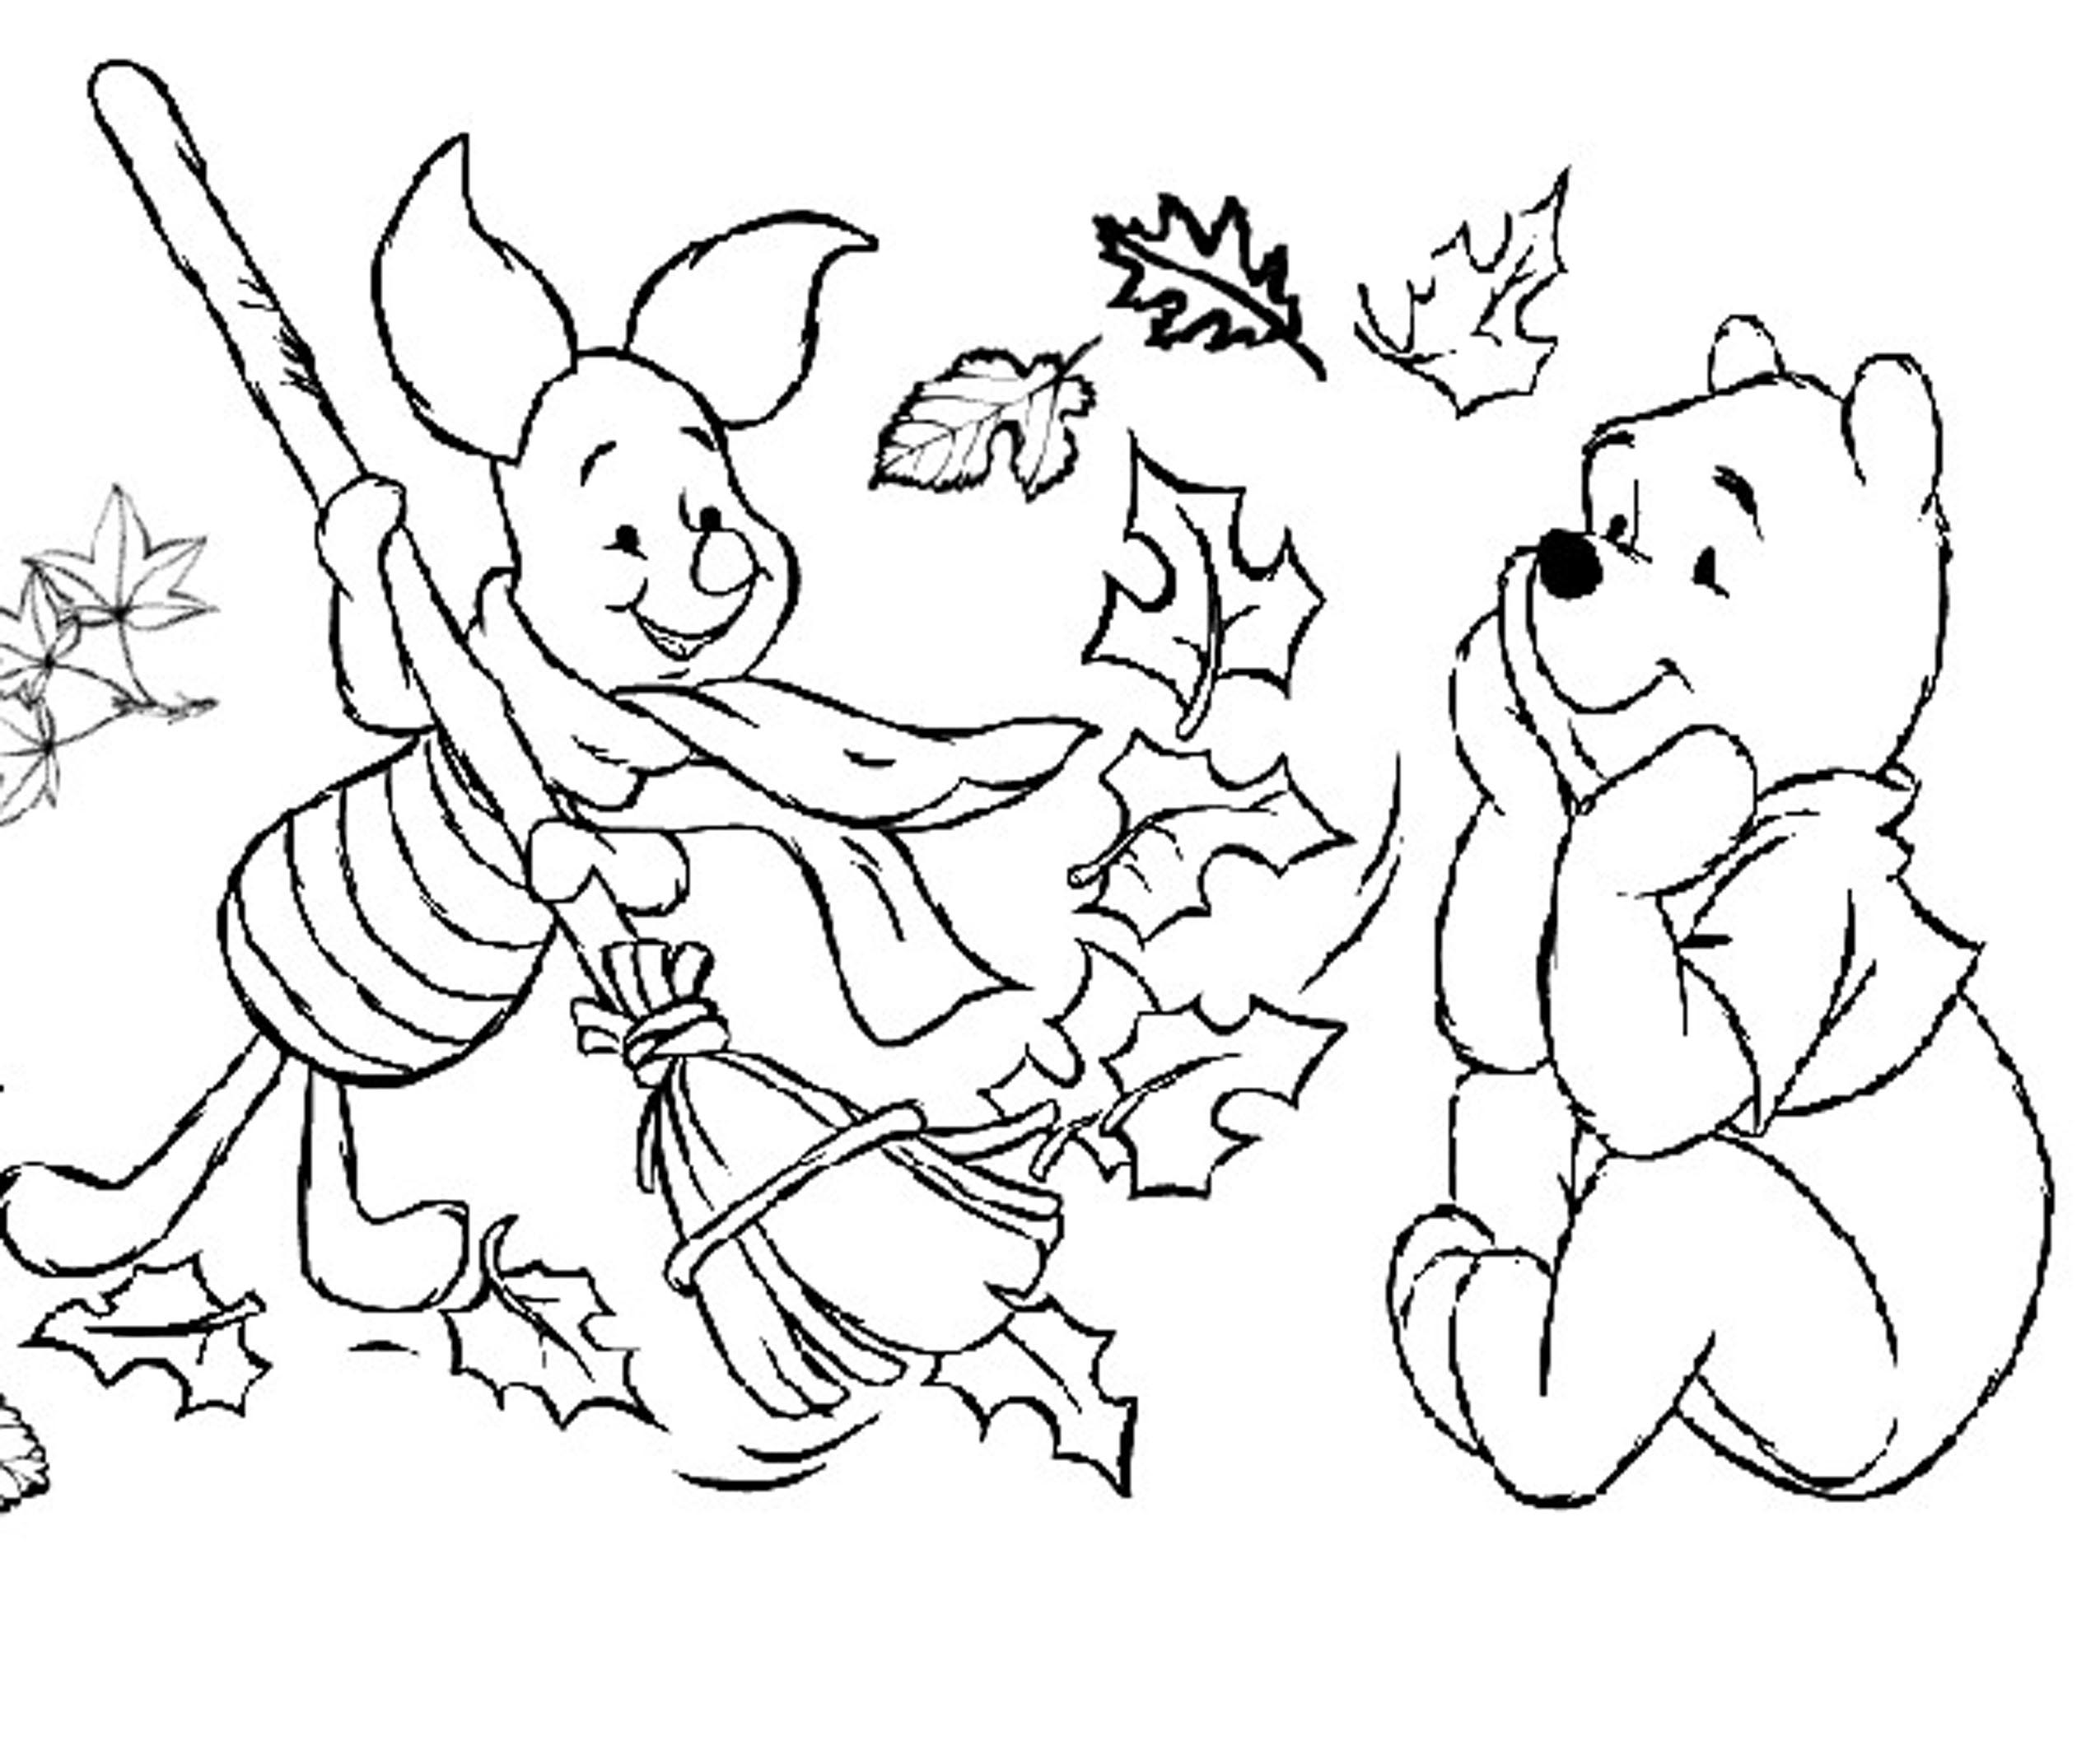 Free coloring pages autumn - Autumn Tree Coloring Page Free Printable Coloring Pages Autumn